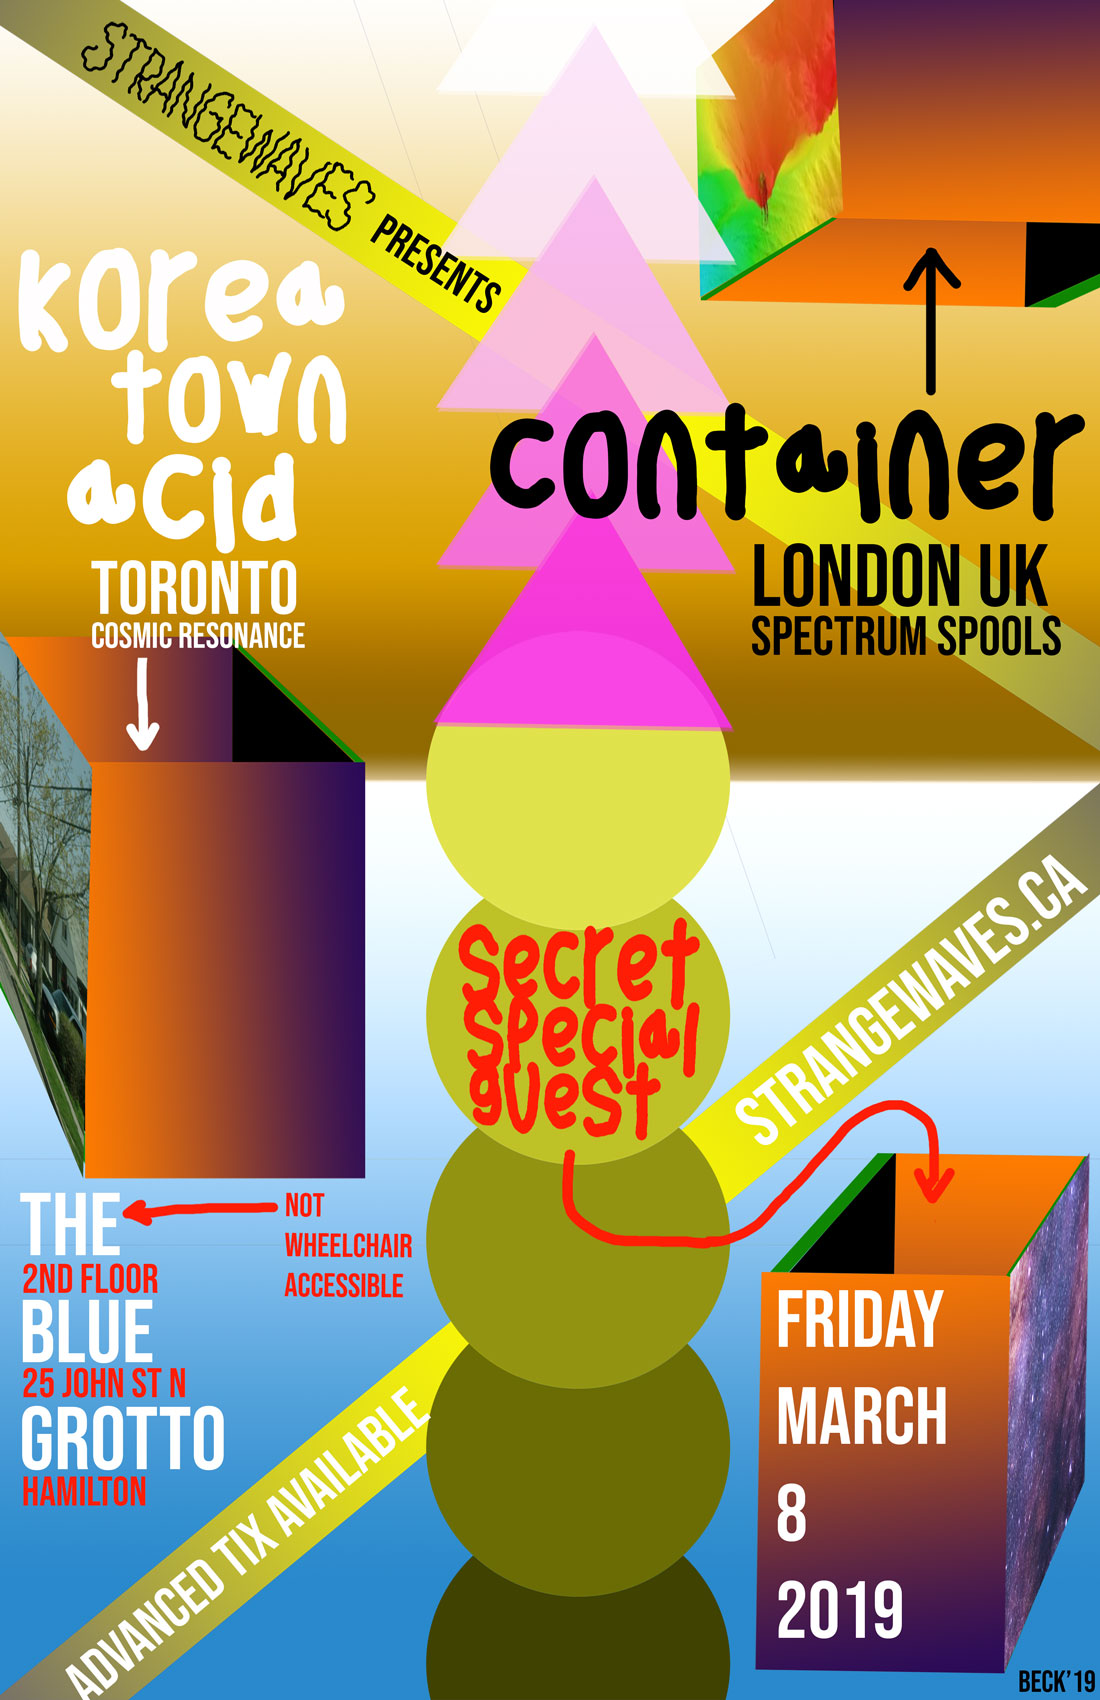 Container, Korea Town Acid, Doomsquad  @The Blue Grotto